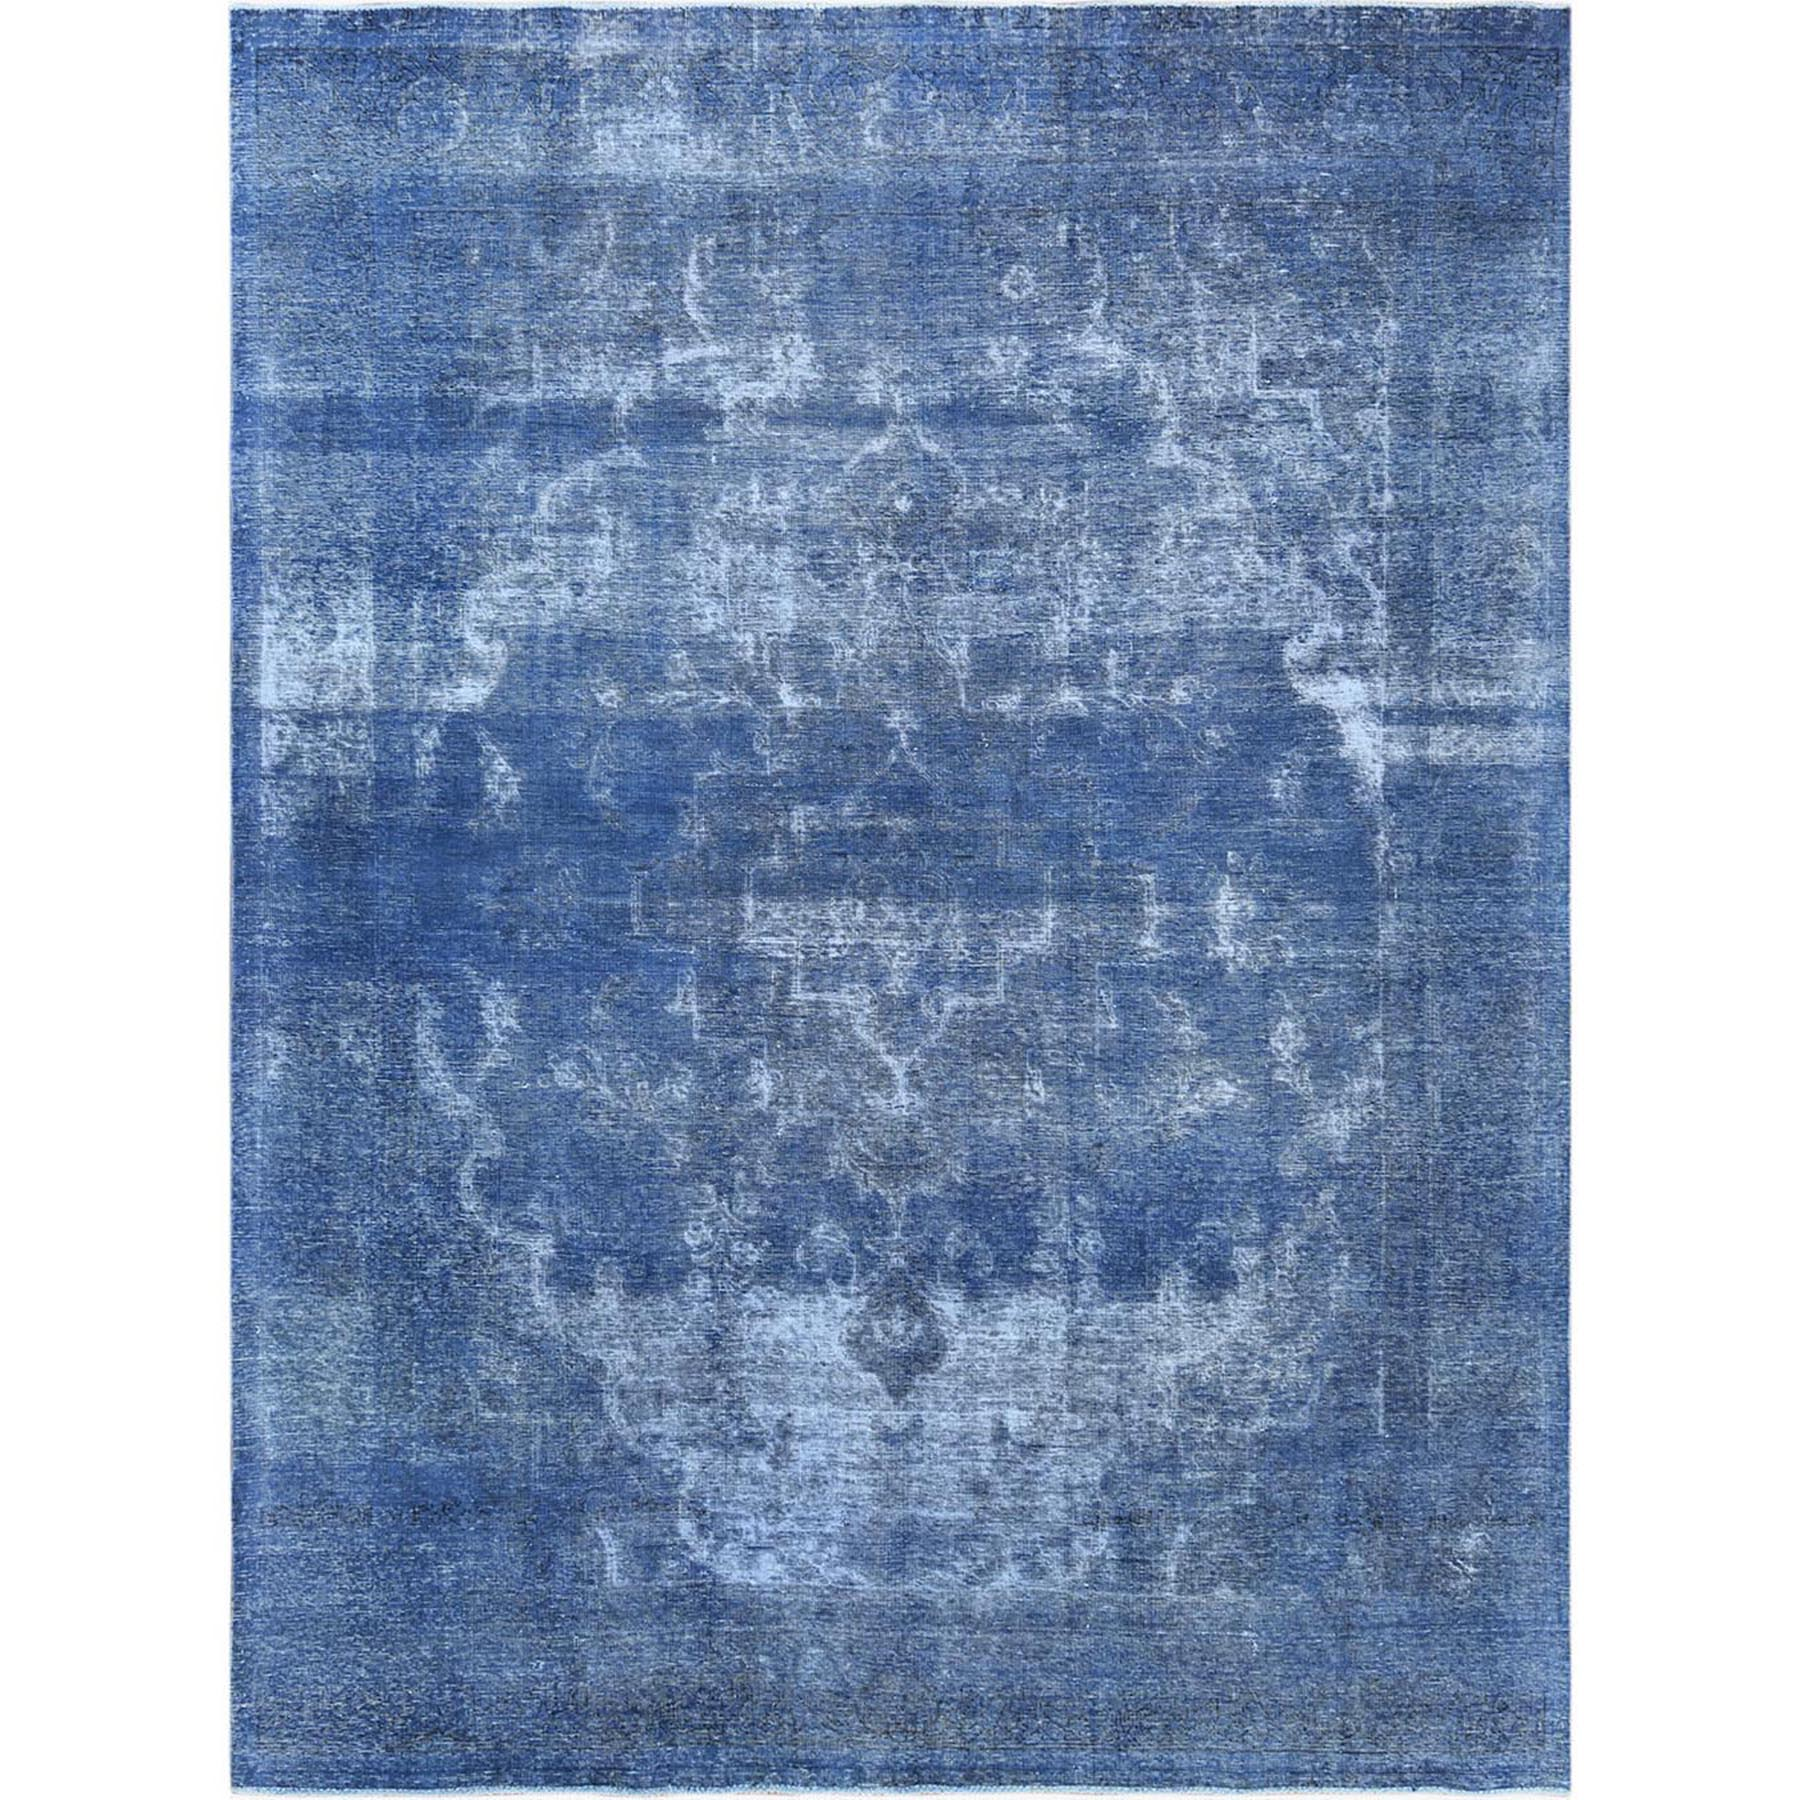 Fetneh Collection And Vintage Overdyed Collection Hand Knotted Blue Rug No: 1122618